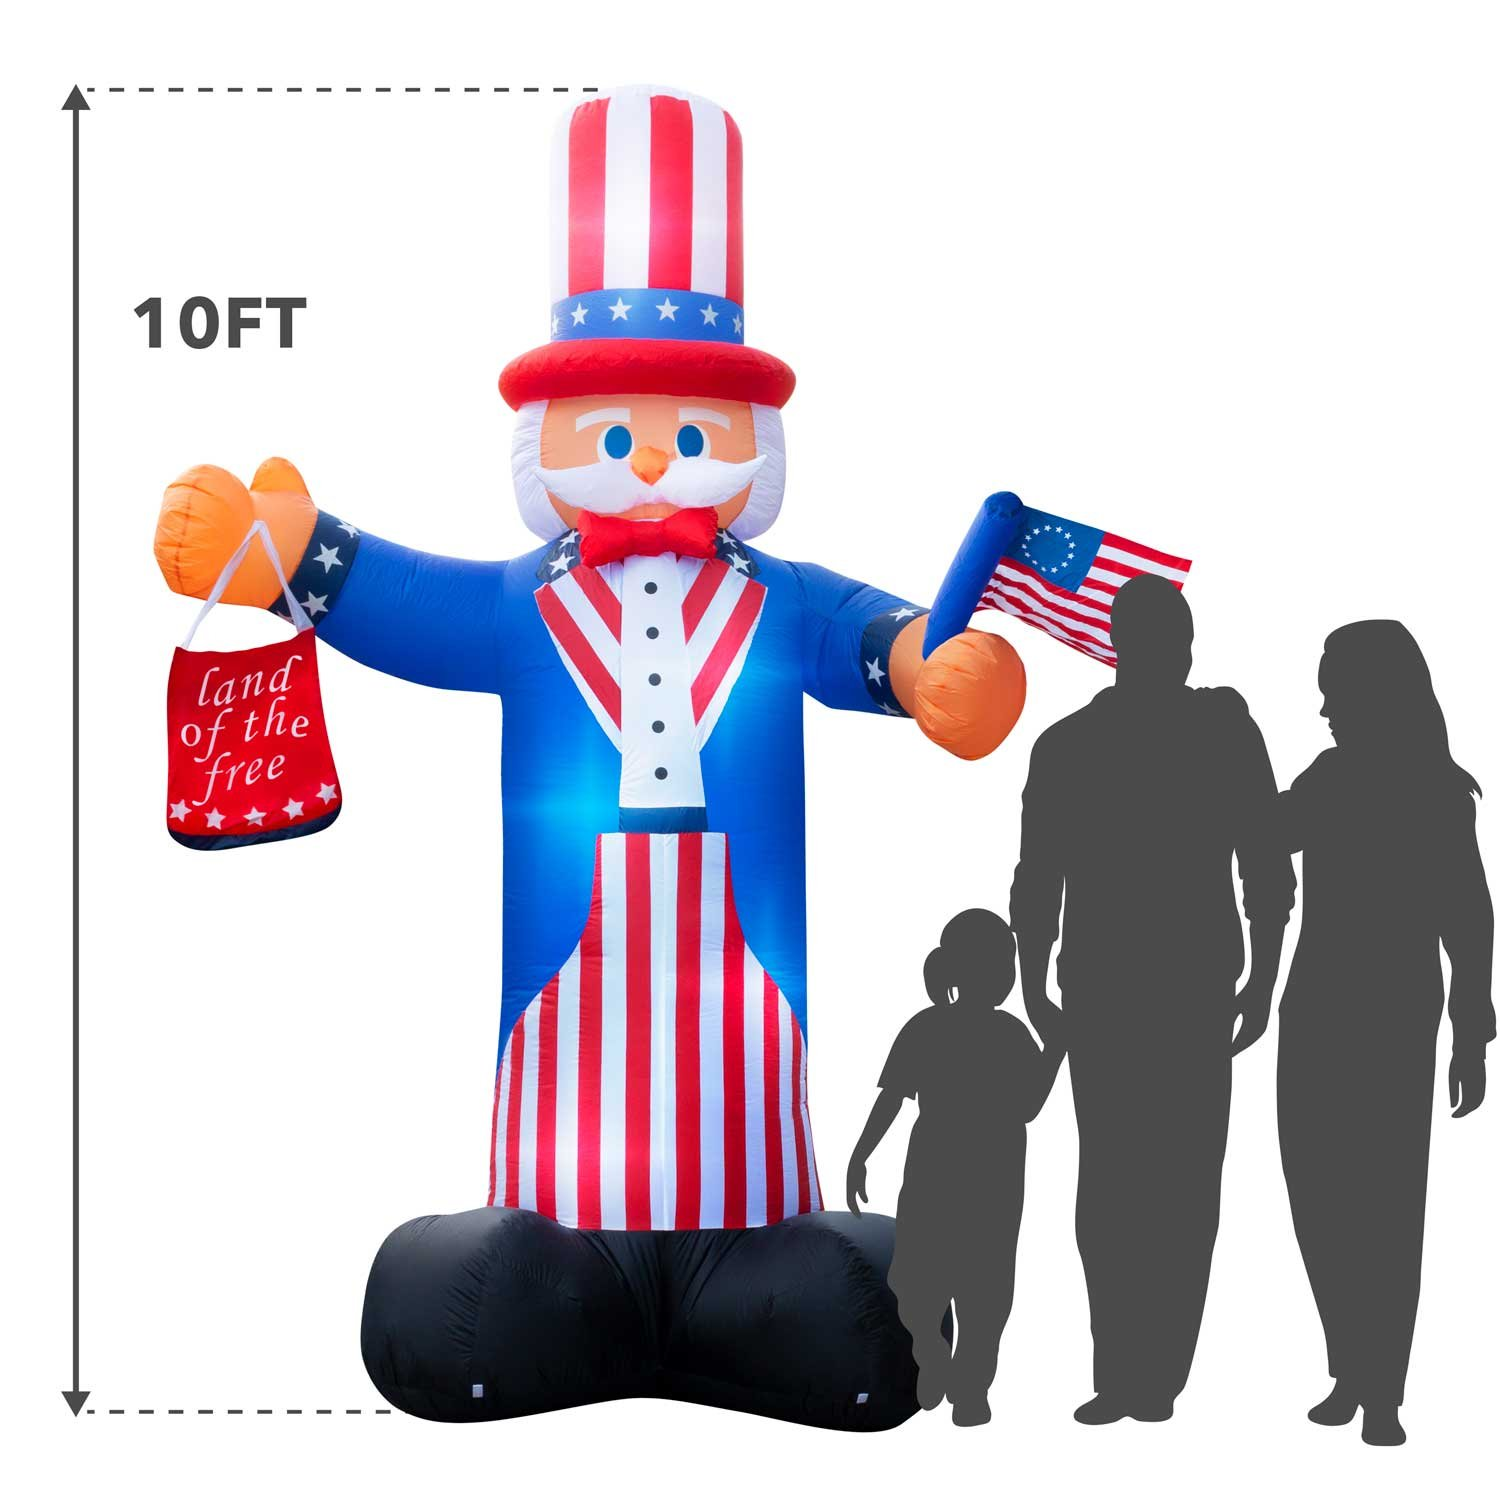 Giant 10 Ft. Tall Holidayana 4th Of July Inflatable Uncle Sam Inflatable Featuring Lighted Interior/Airblown Inflatable 4th of July Decoration With Built In Fan And Anchor Ropes